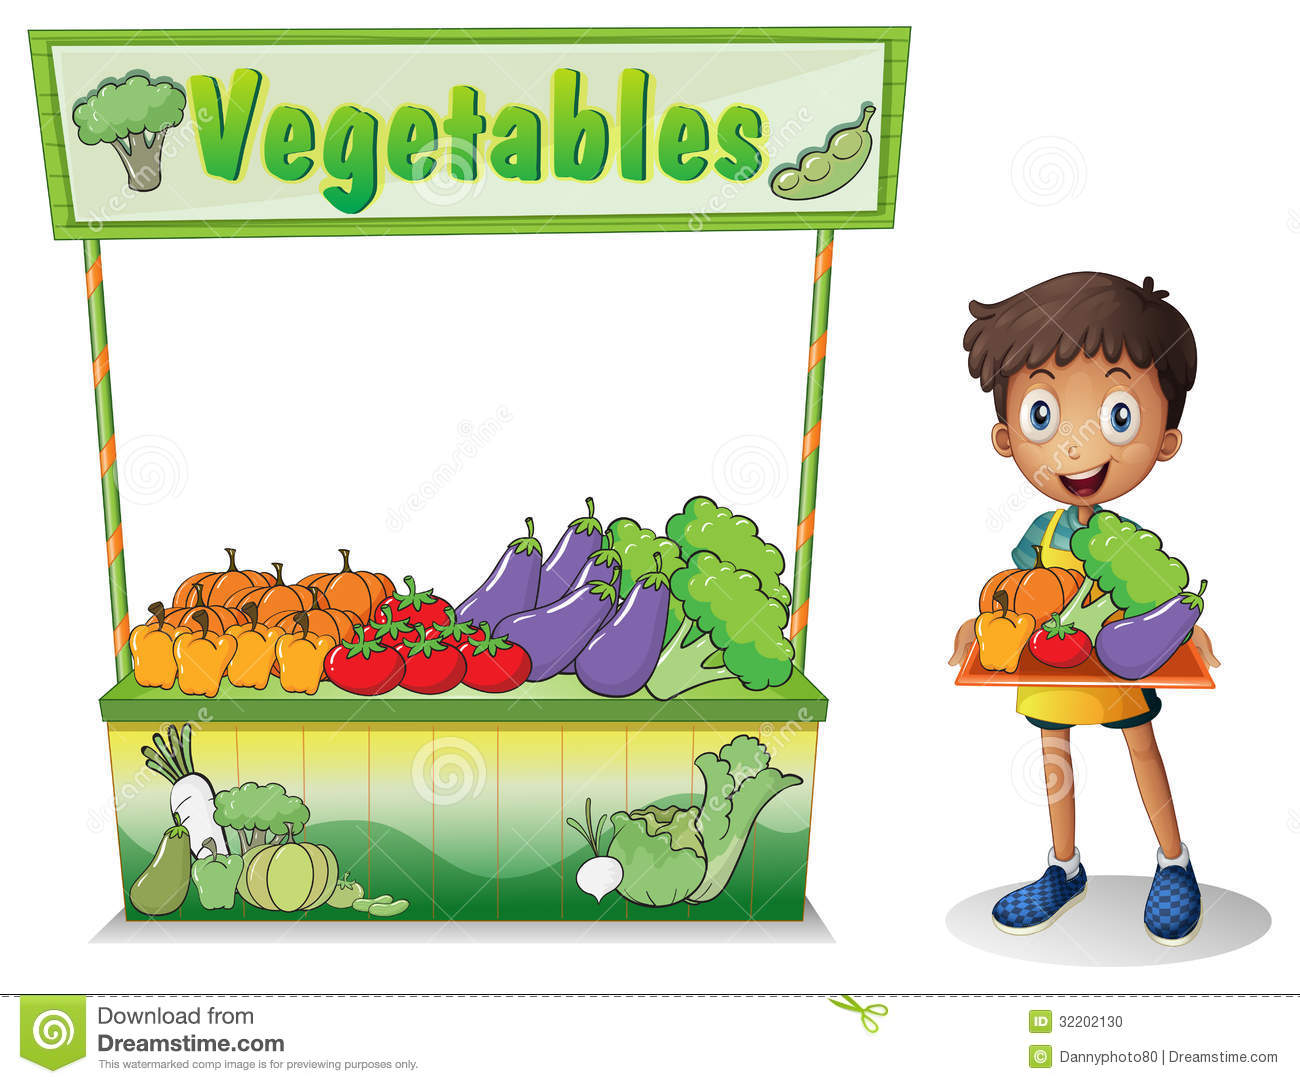 A boy selling vegetables stock vector. Illustration of ...